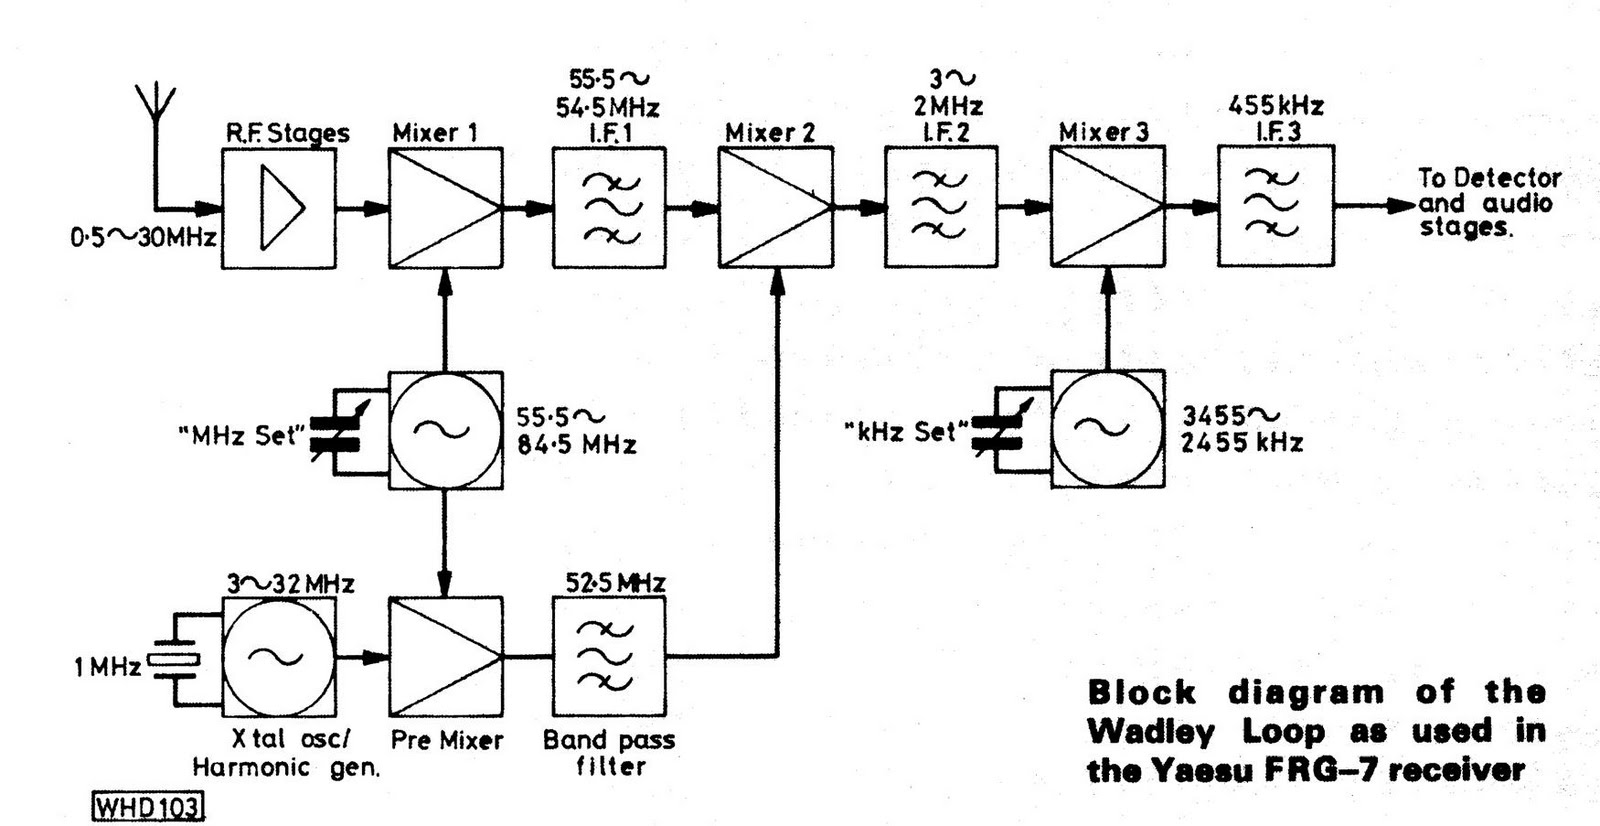 medium resolution of in many wadley loop receivers if2 is fixed tuned with a 1 mhz passband but in the frg 7 it is tuned in step with the khz set oscillator